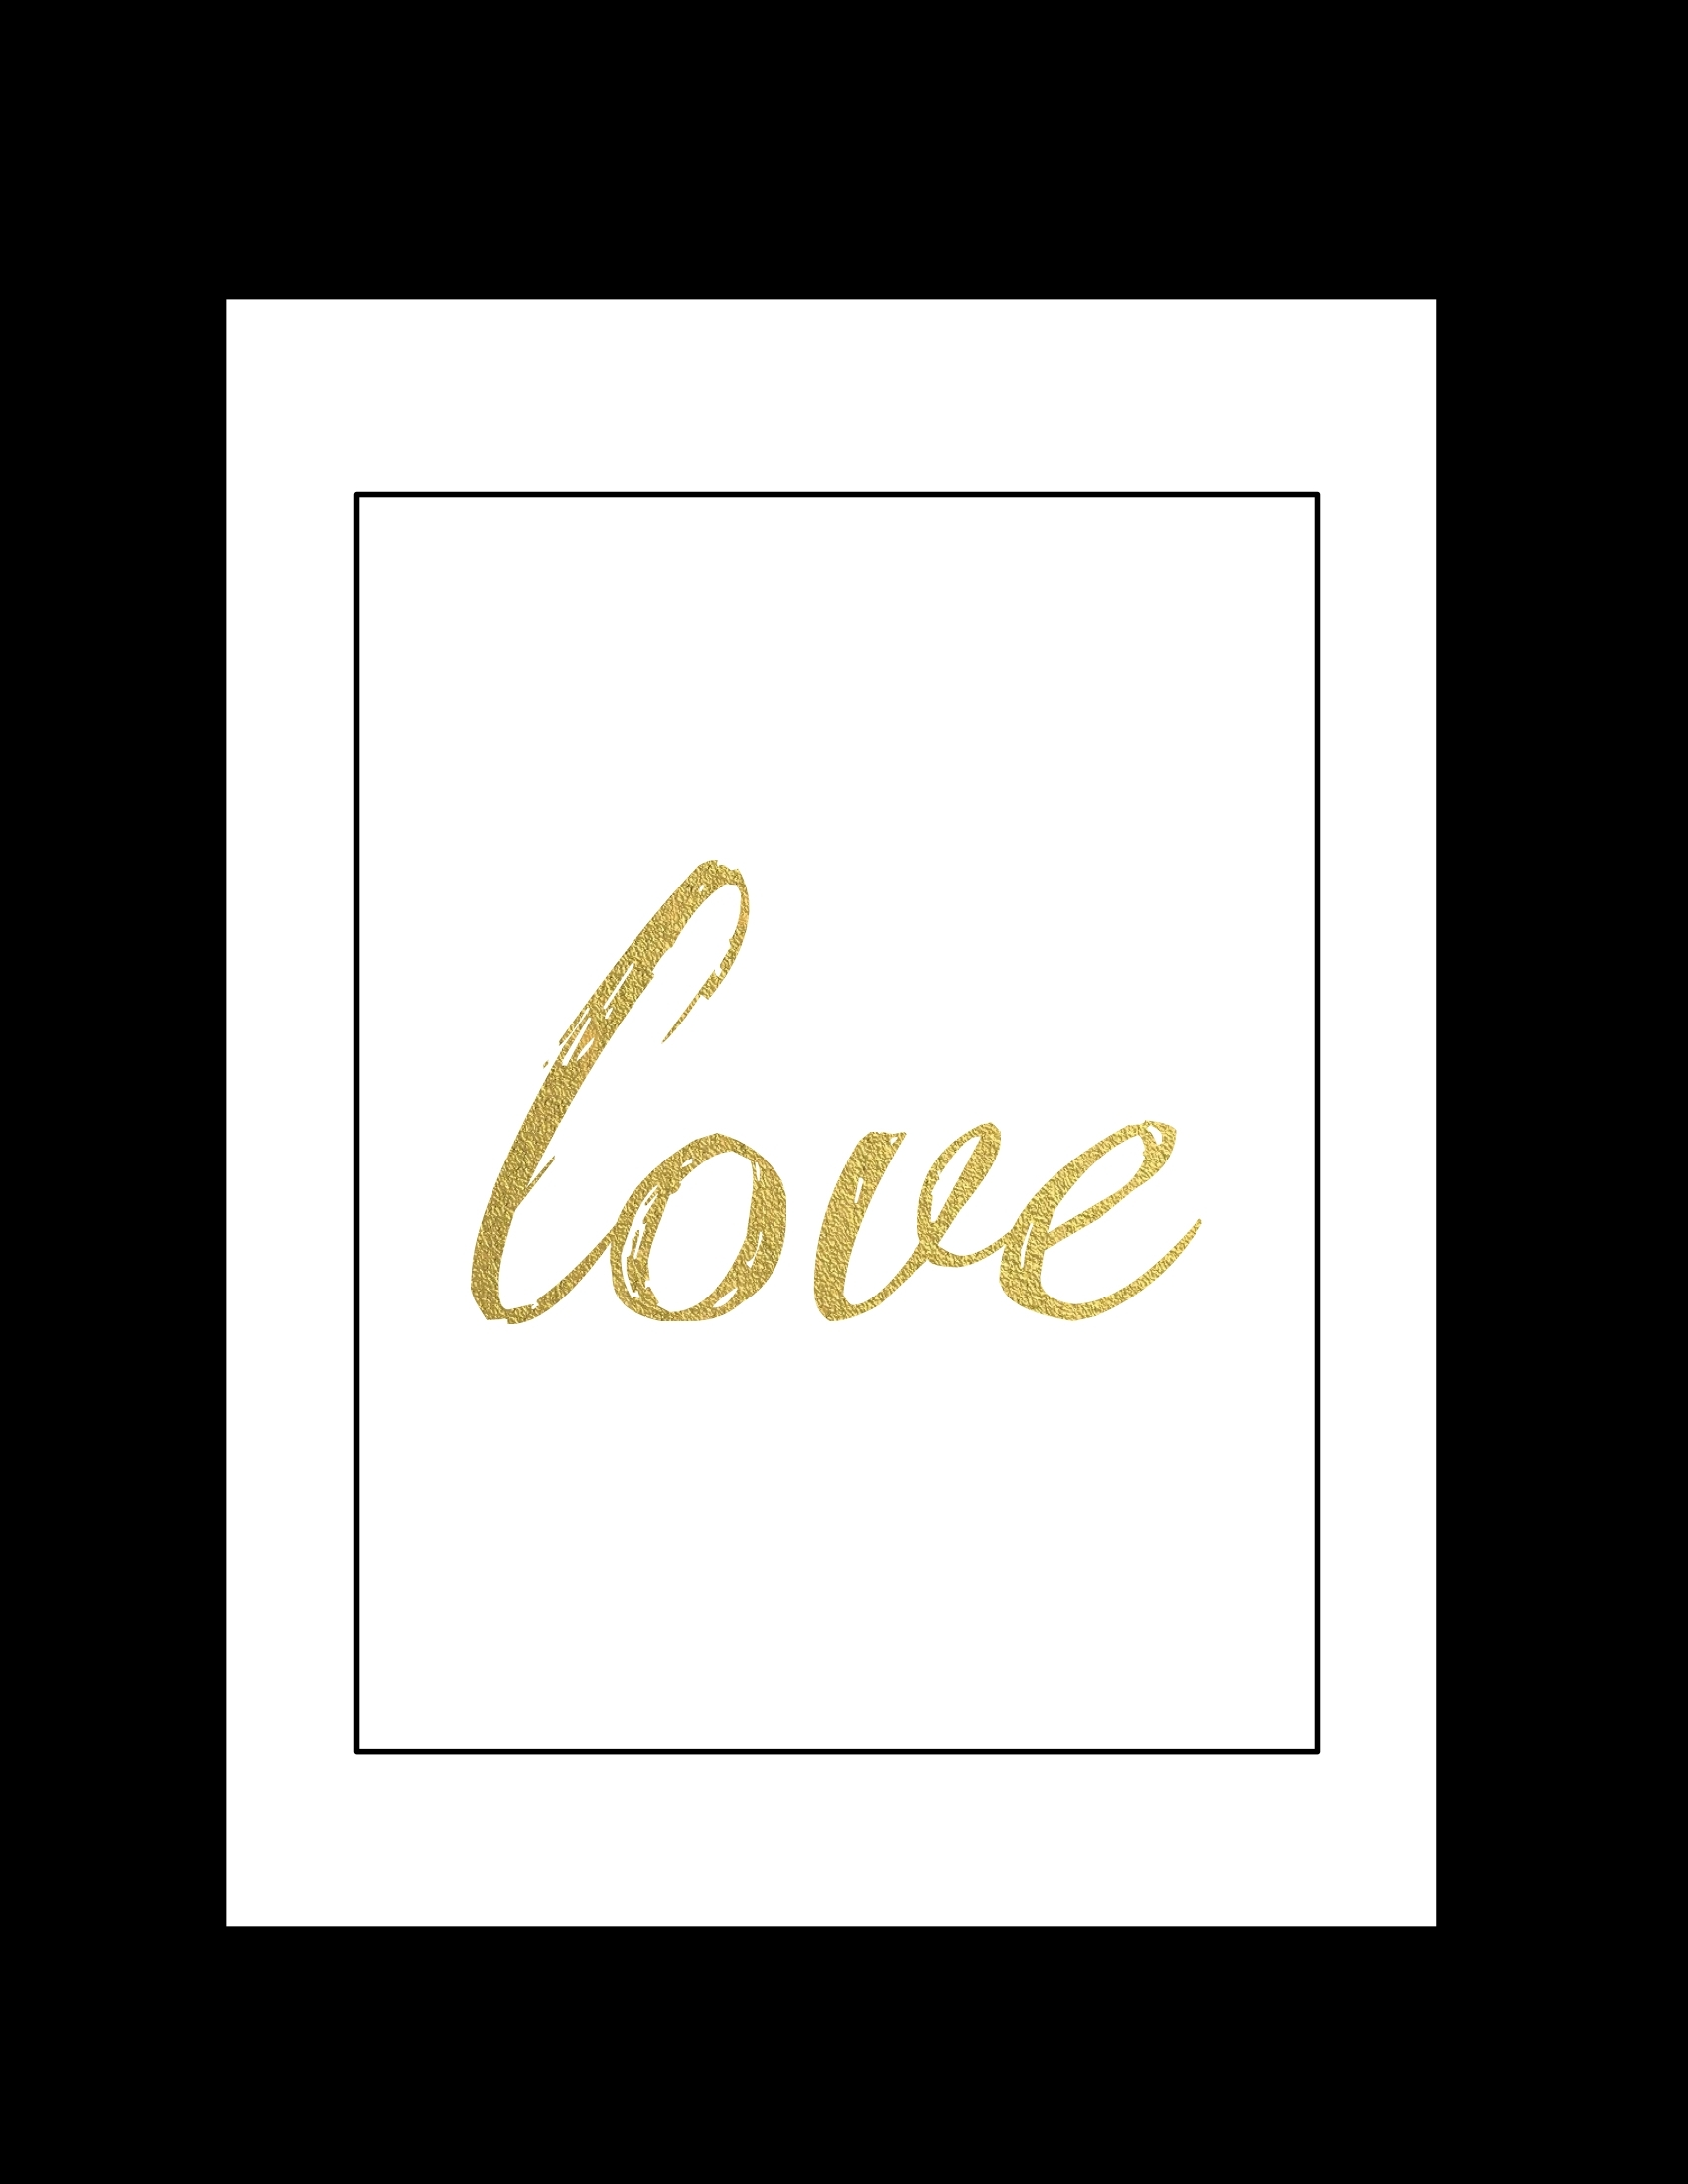 Free Printable Wall Art: Black And Gold Love – Paper Trail Design Inside Latest Free Printable Wall Art Decors (Gallery 4 of 20)